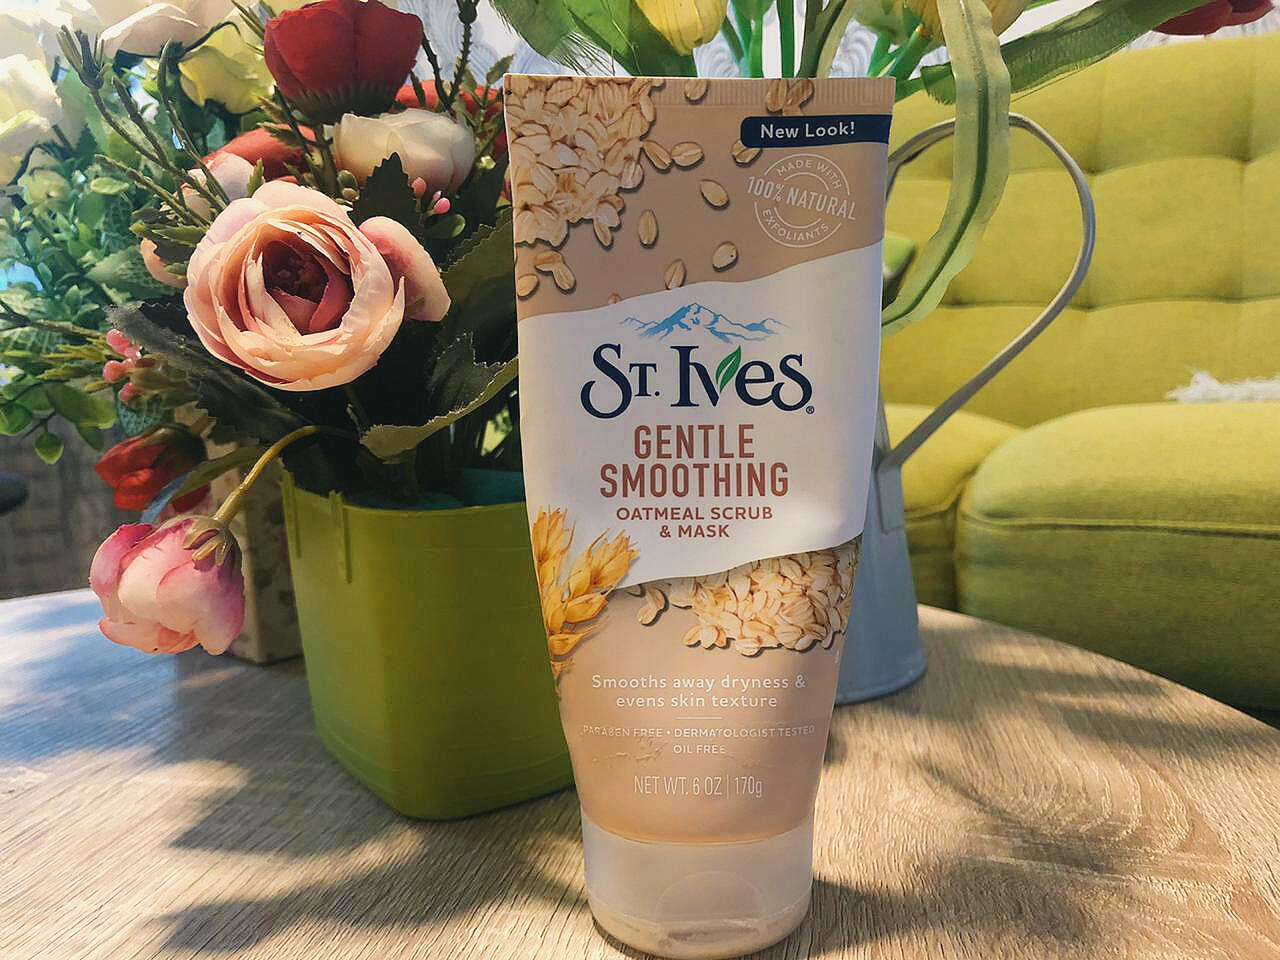 REVIEW - ST Ives Gentle Smoothing Oatmeal Scrub and Mask ...